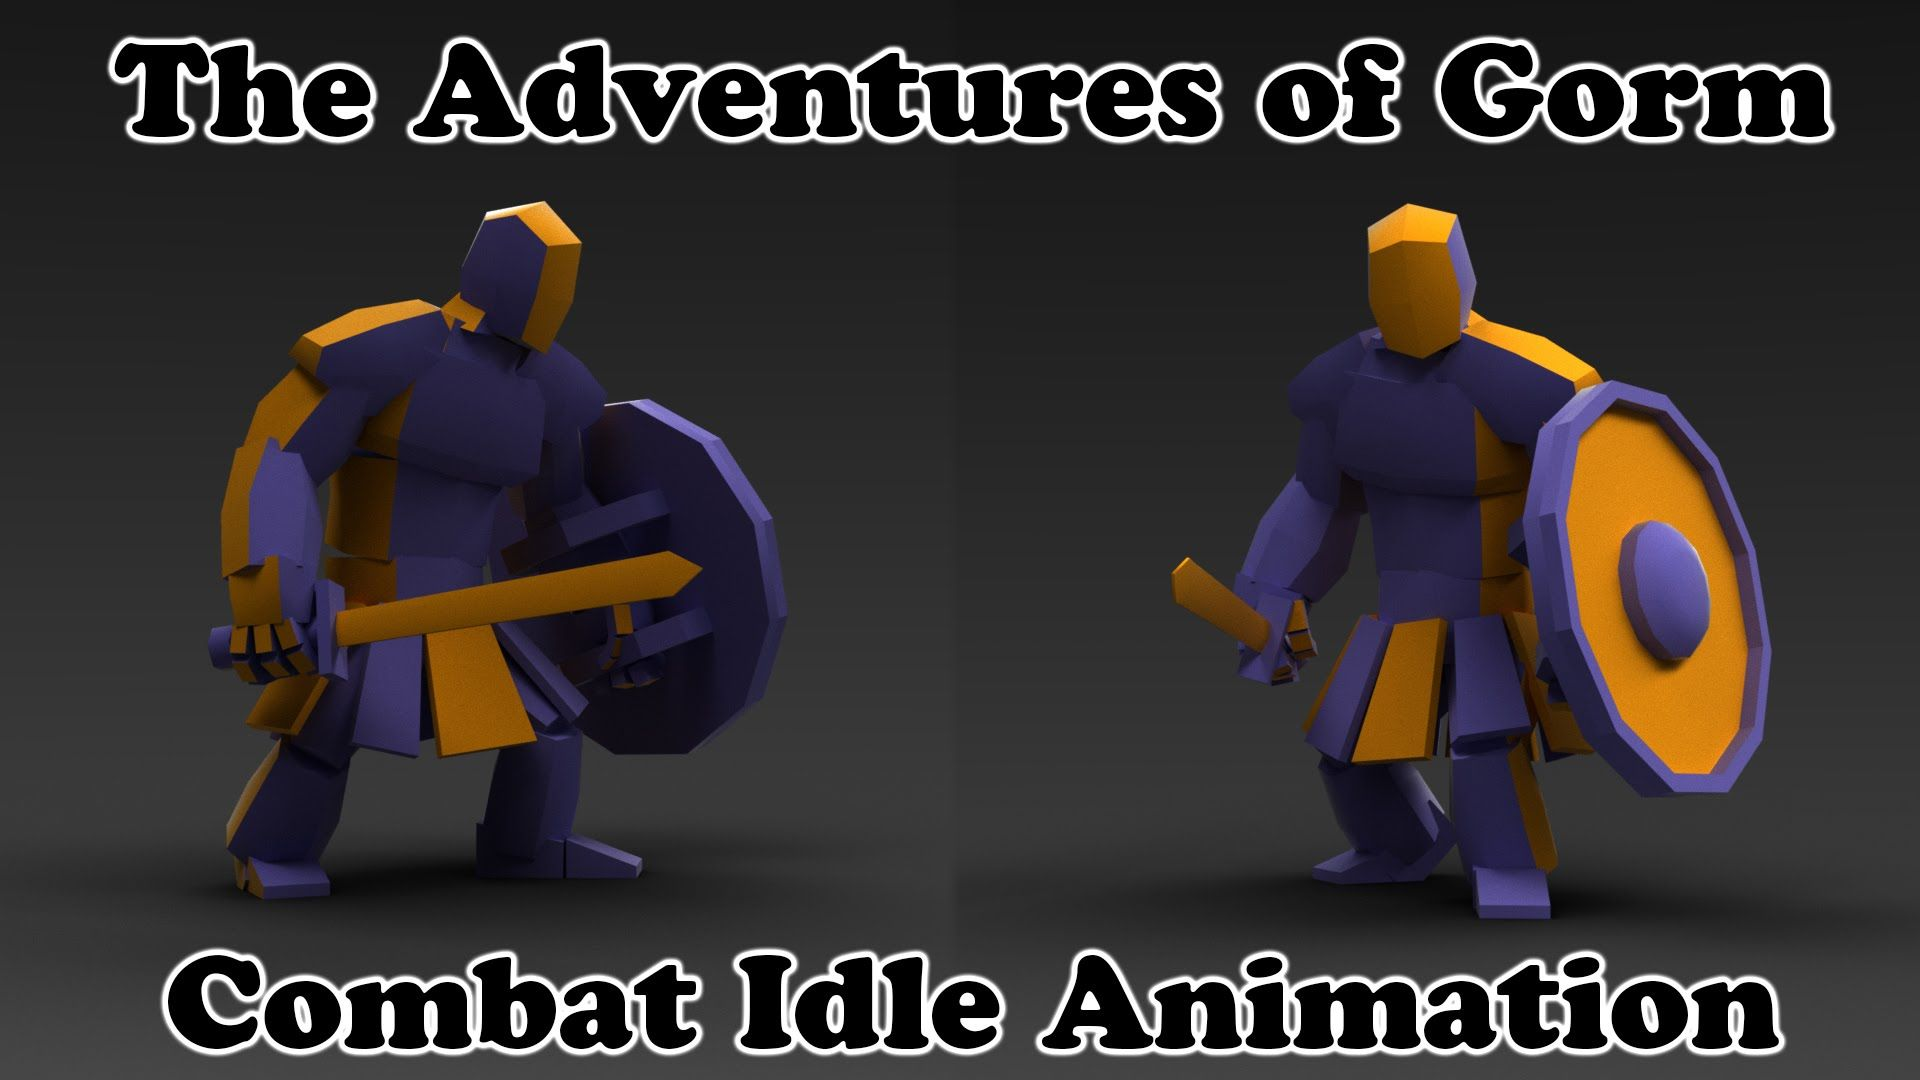 The Adventures of Gorm Combat Idle Animation Unreal